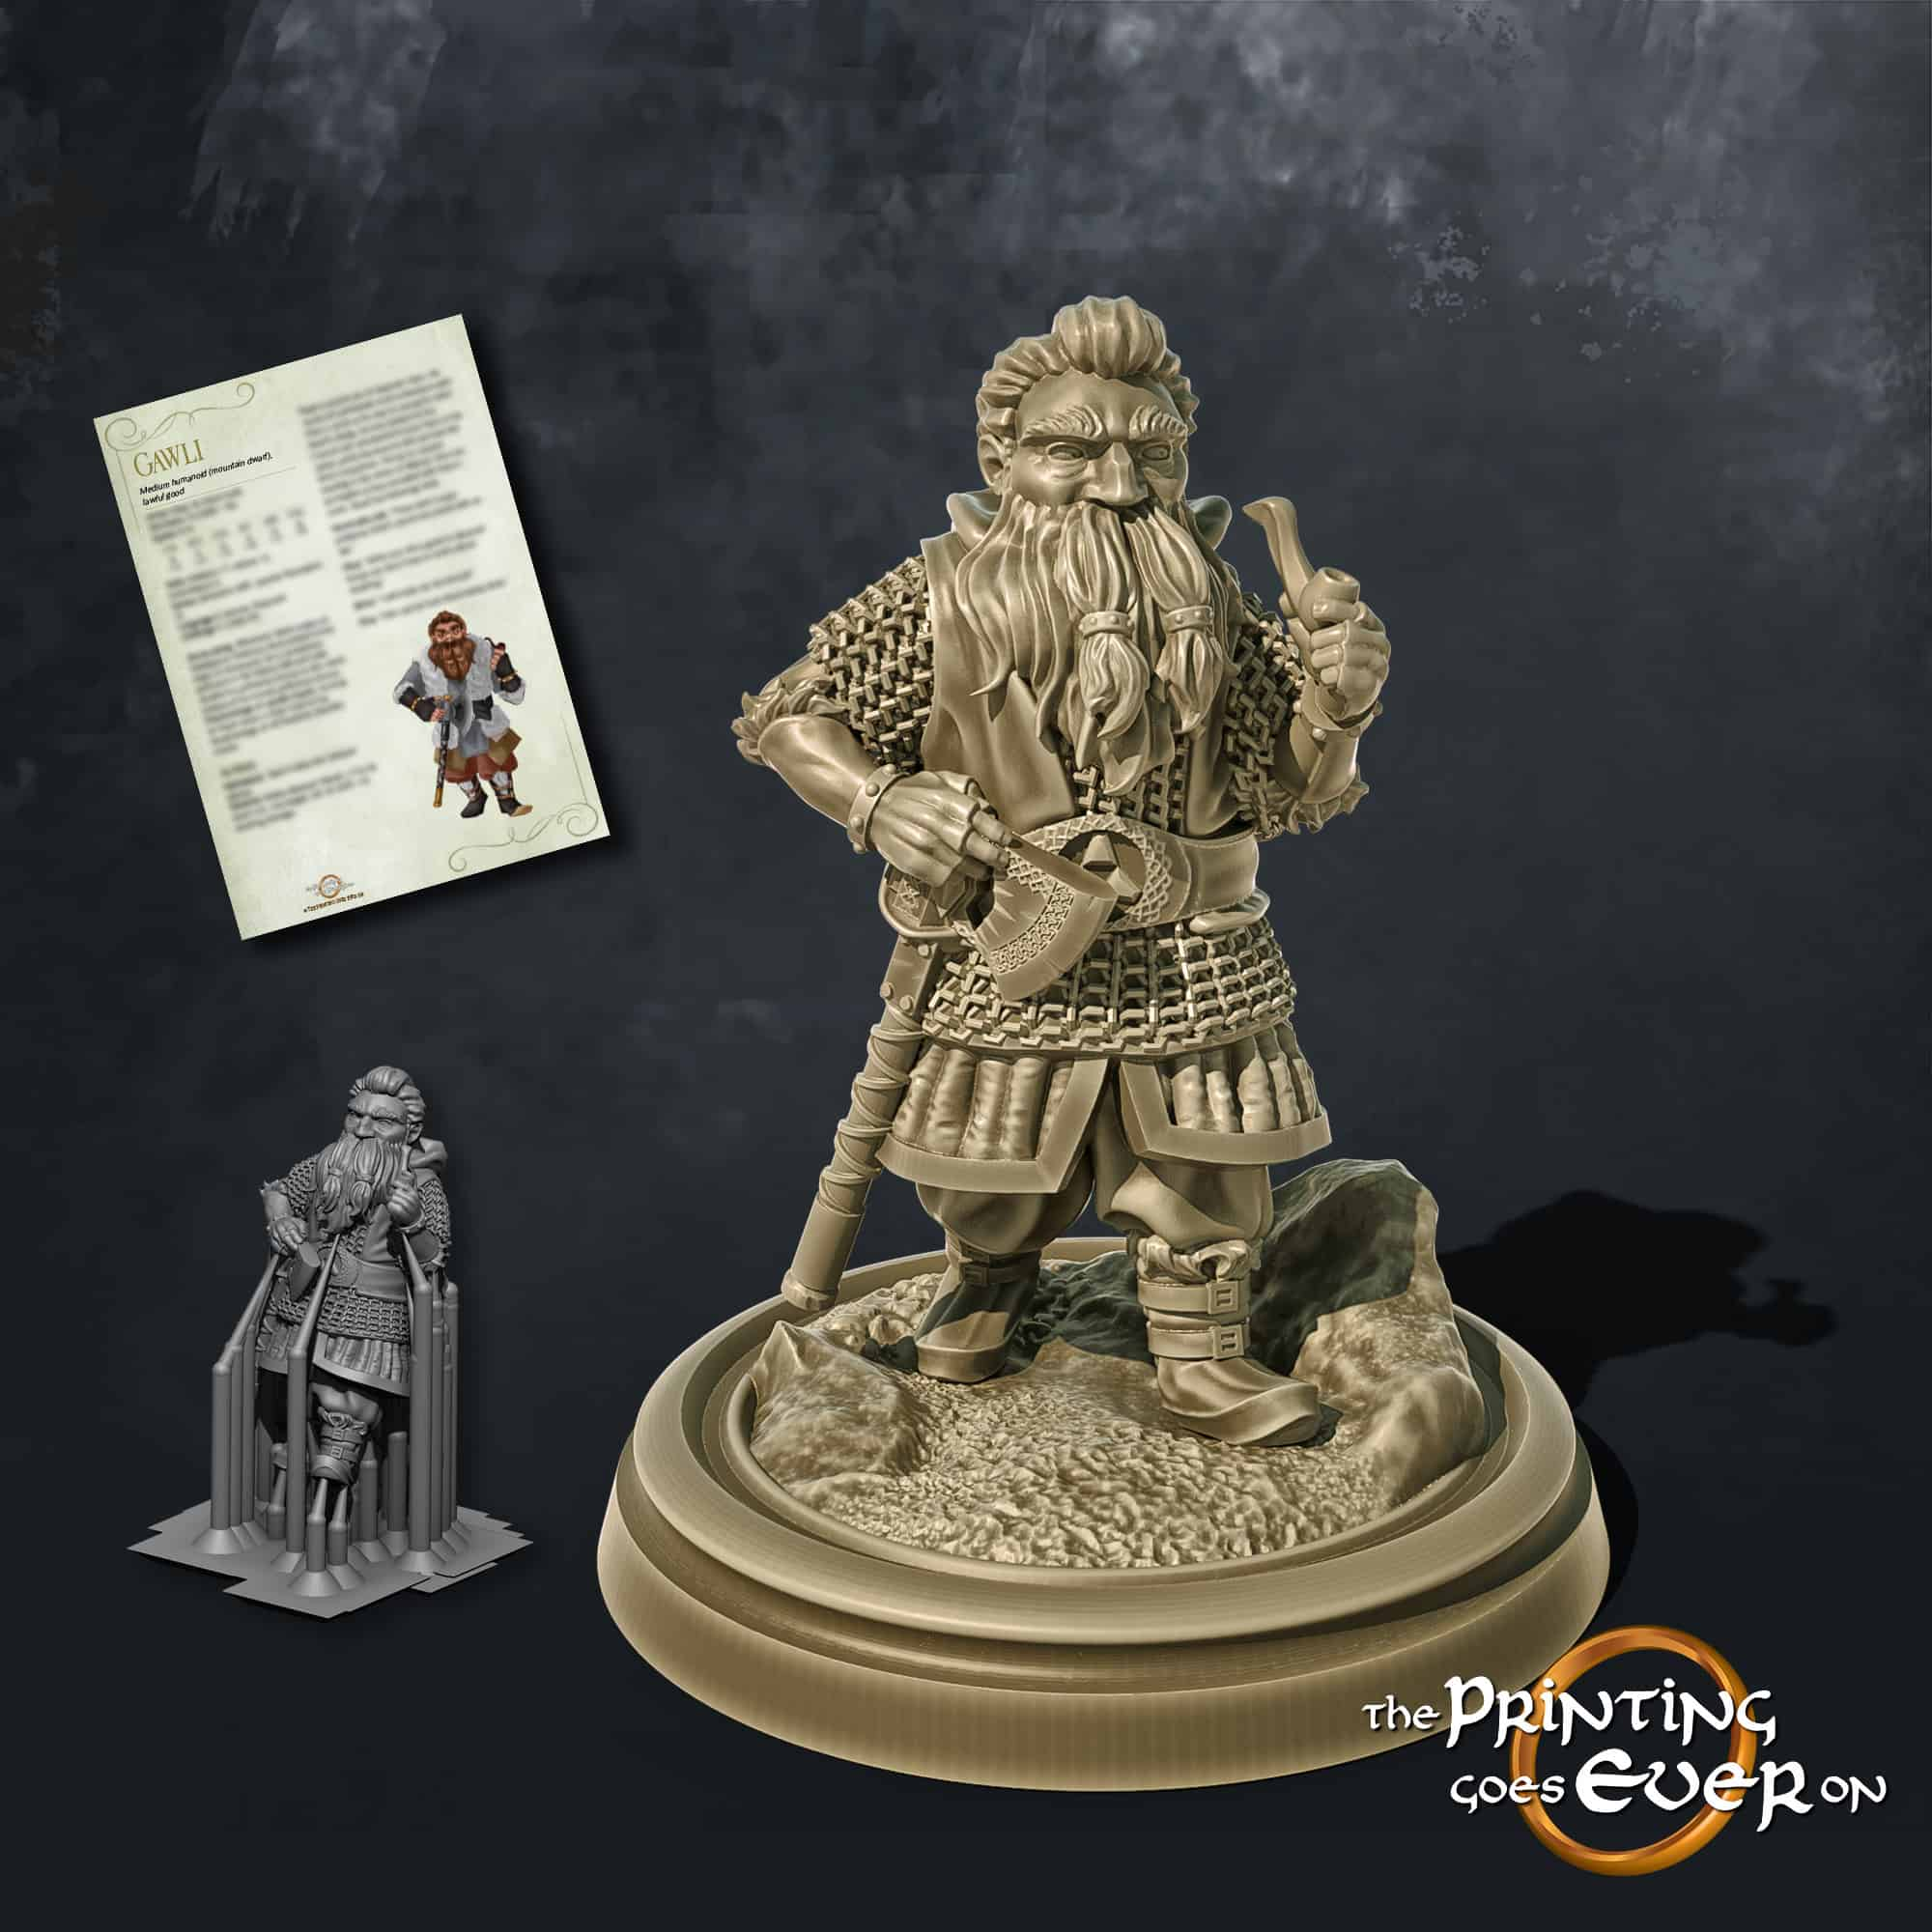 gawli dwarf fighter with axe and smoking pipe in chainmail walking 3d printable tabletop miniature from the printing goes ever on patreon welcome trove